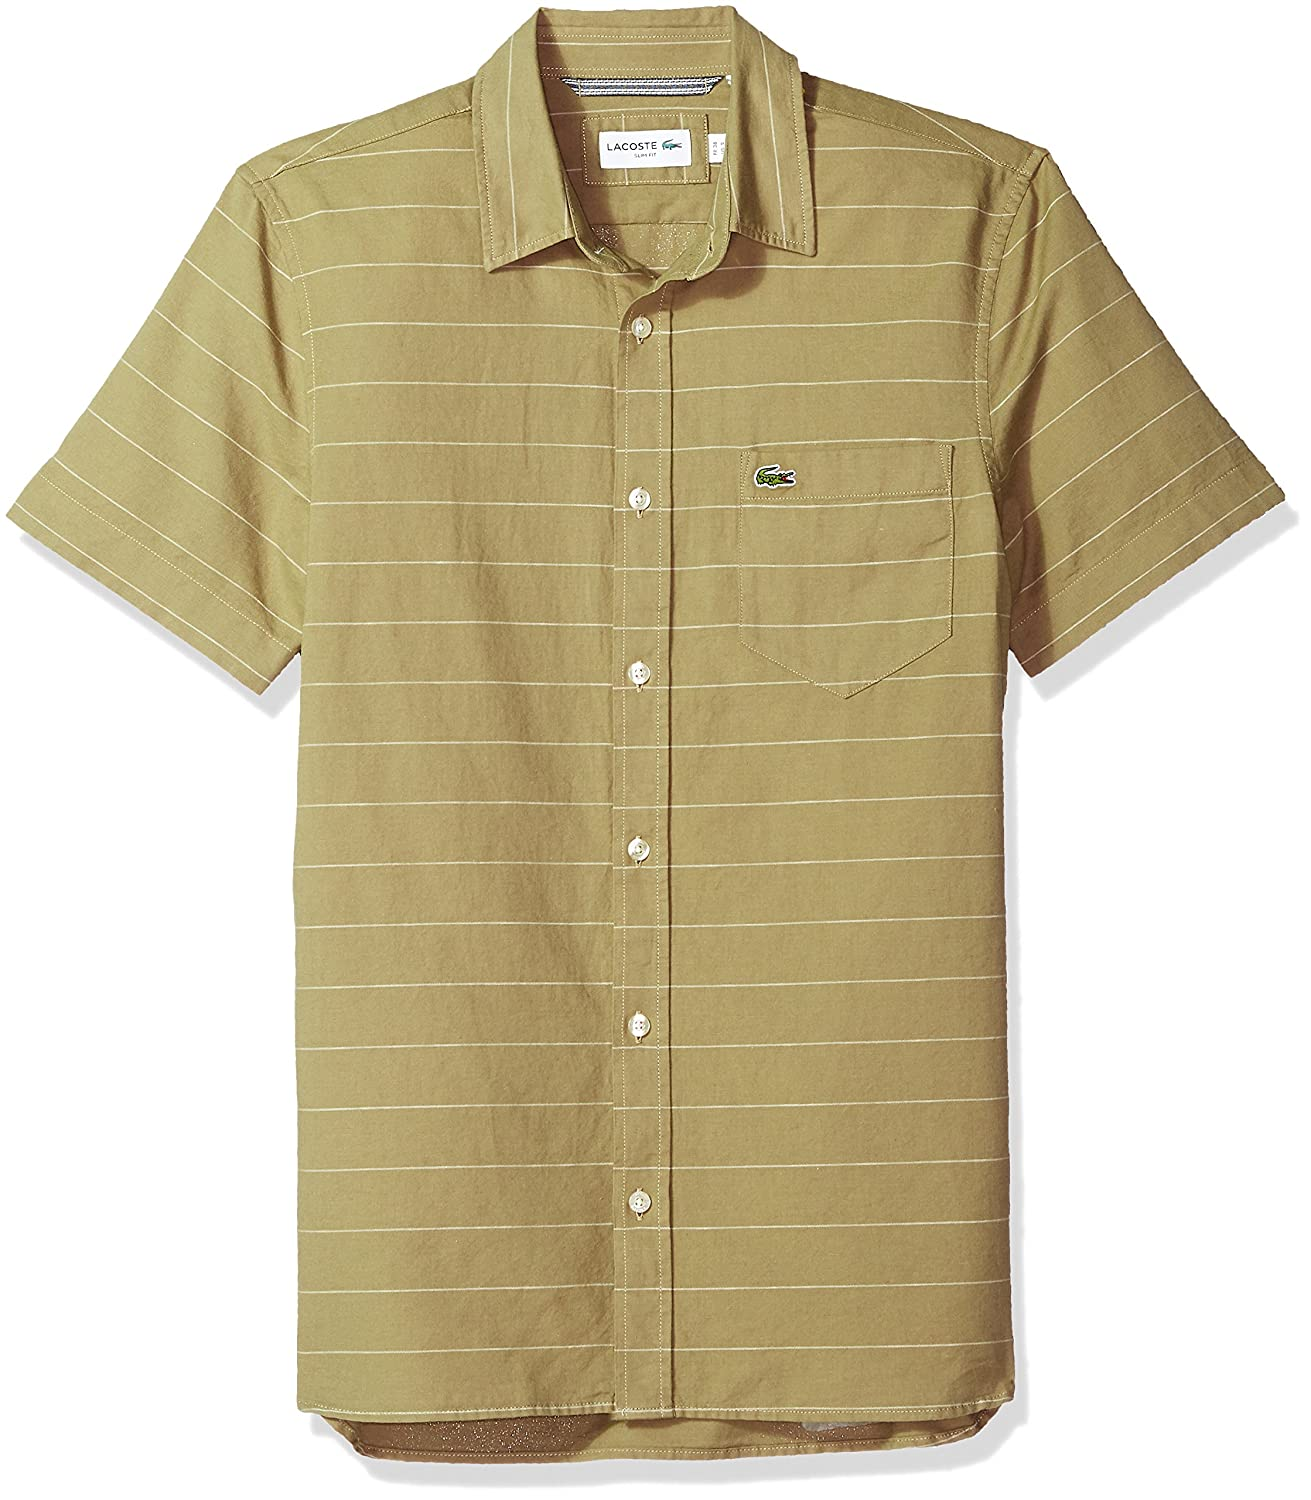 1f38ae78 Lacoste Men's Short Sleeve Striped Button Down Collar Slim Woven Shirt,  CH4966 70%OFF